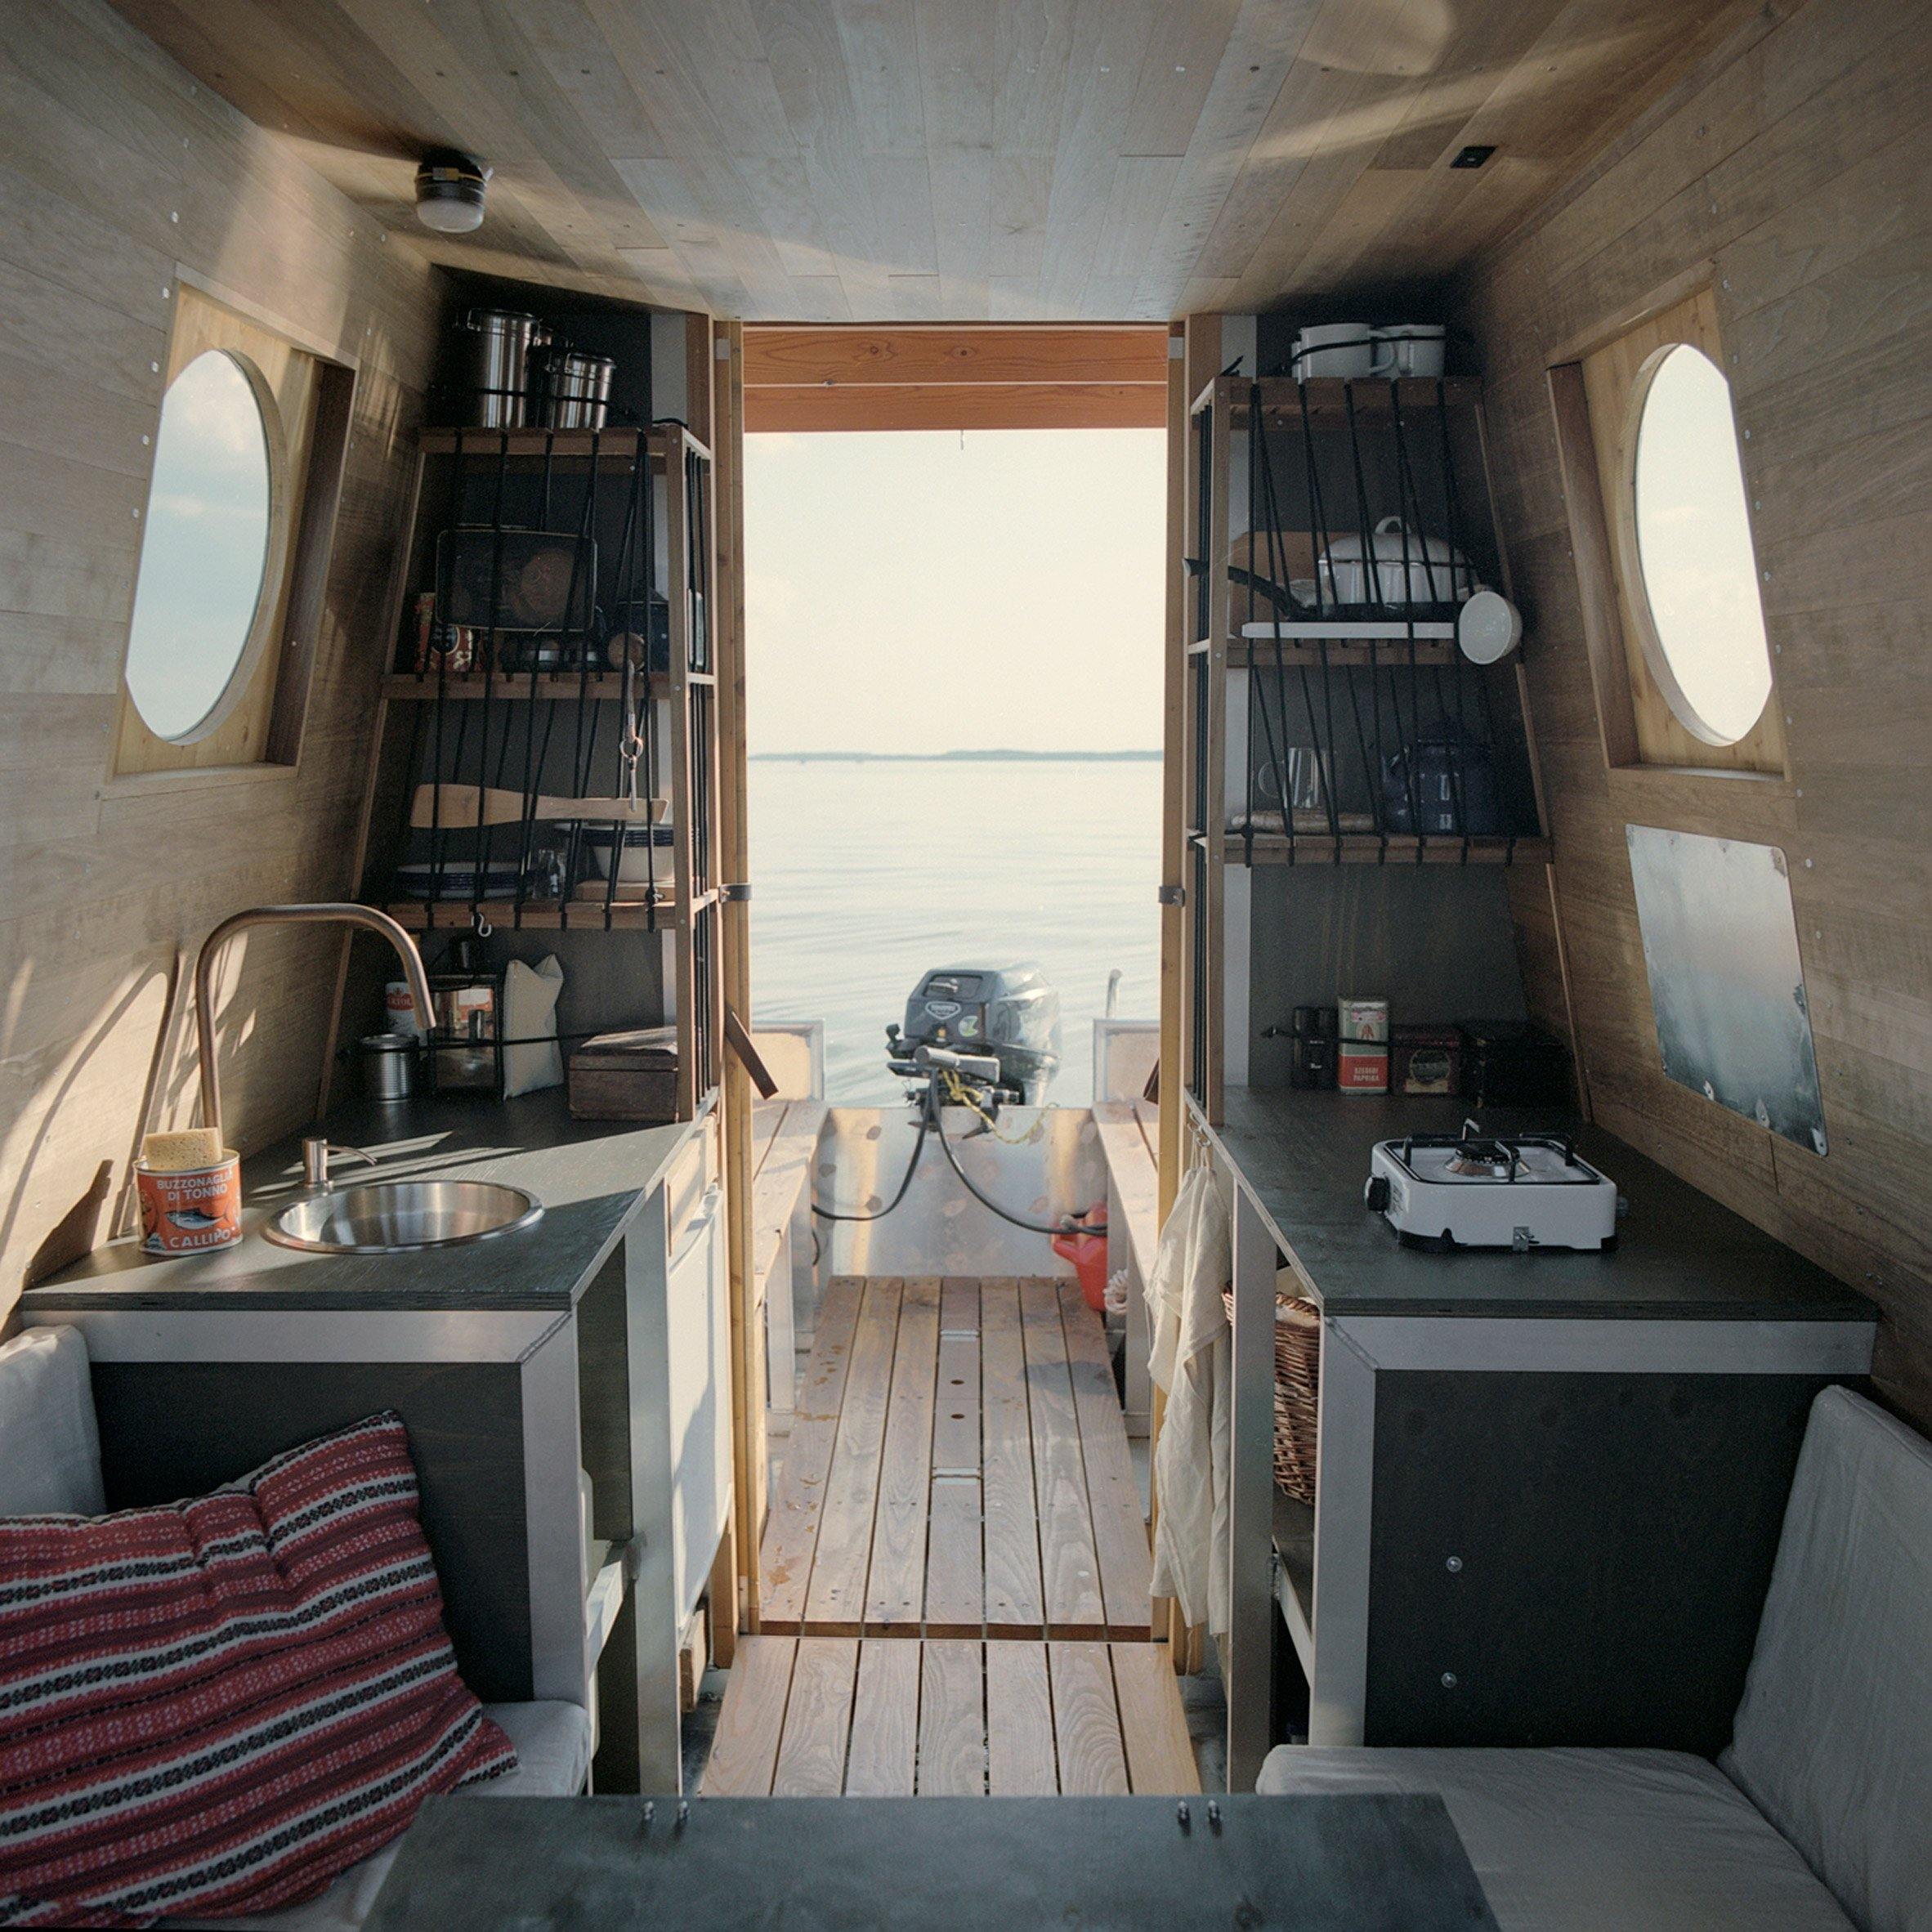 Kitchen of the Sneci houseboat by Tamás Bene